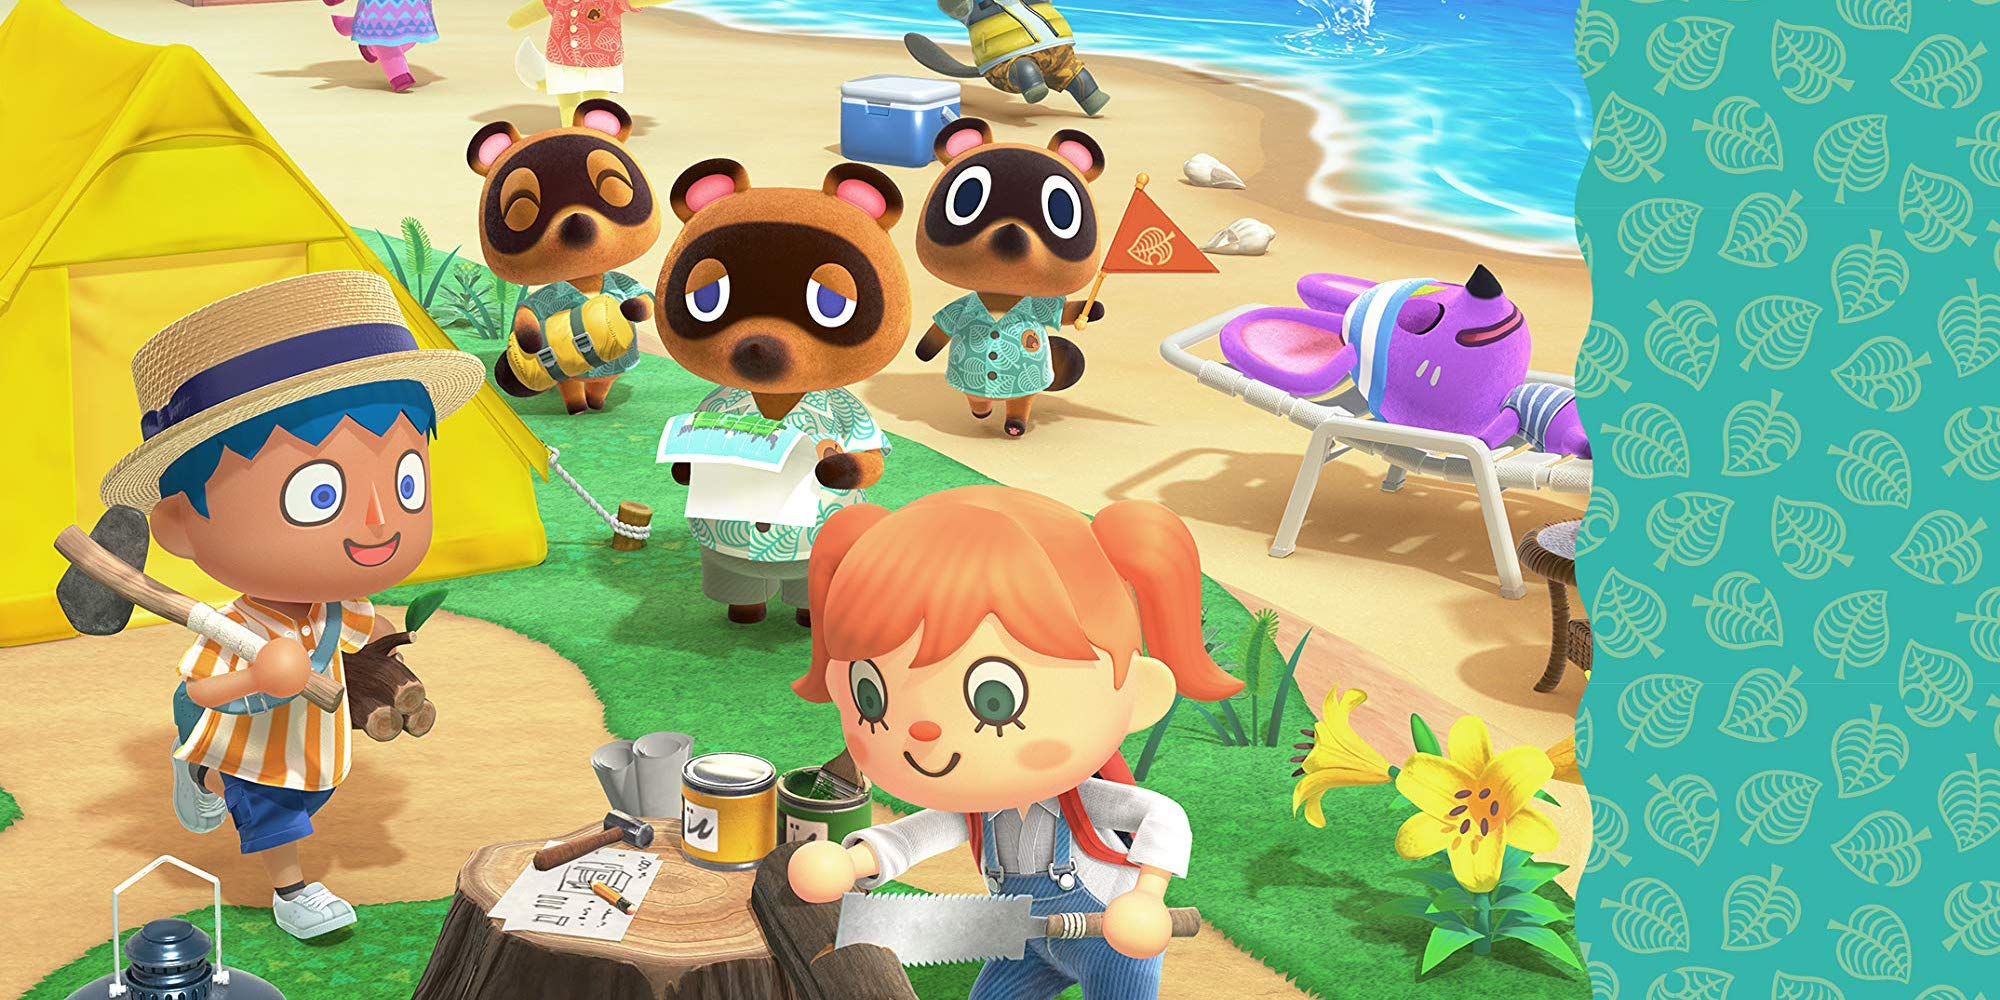 Score the Animal Crossing: New Horizons Guide at $18 on Amazon (Reg. $30) - 9to5Toys